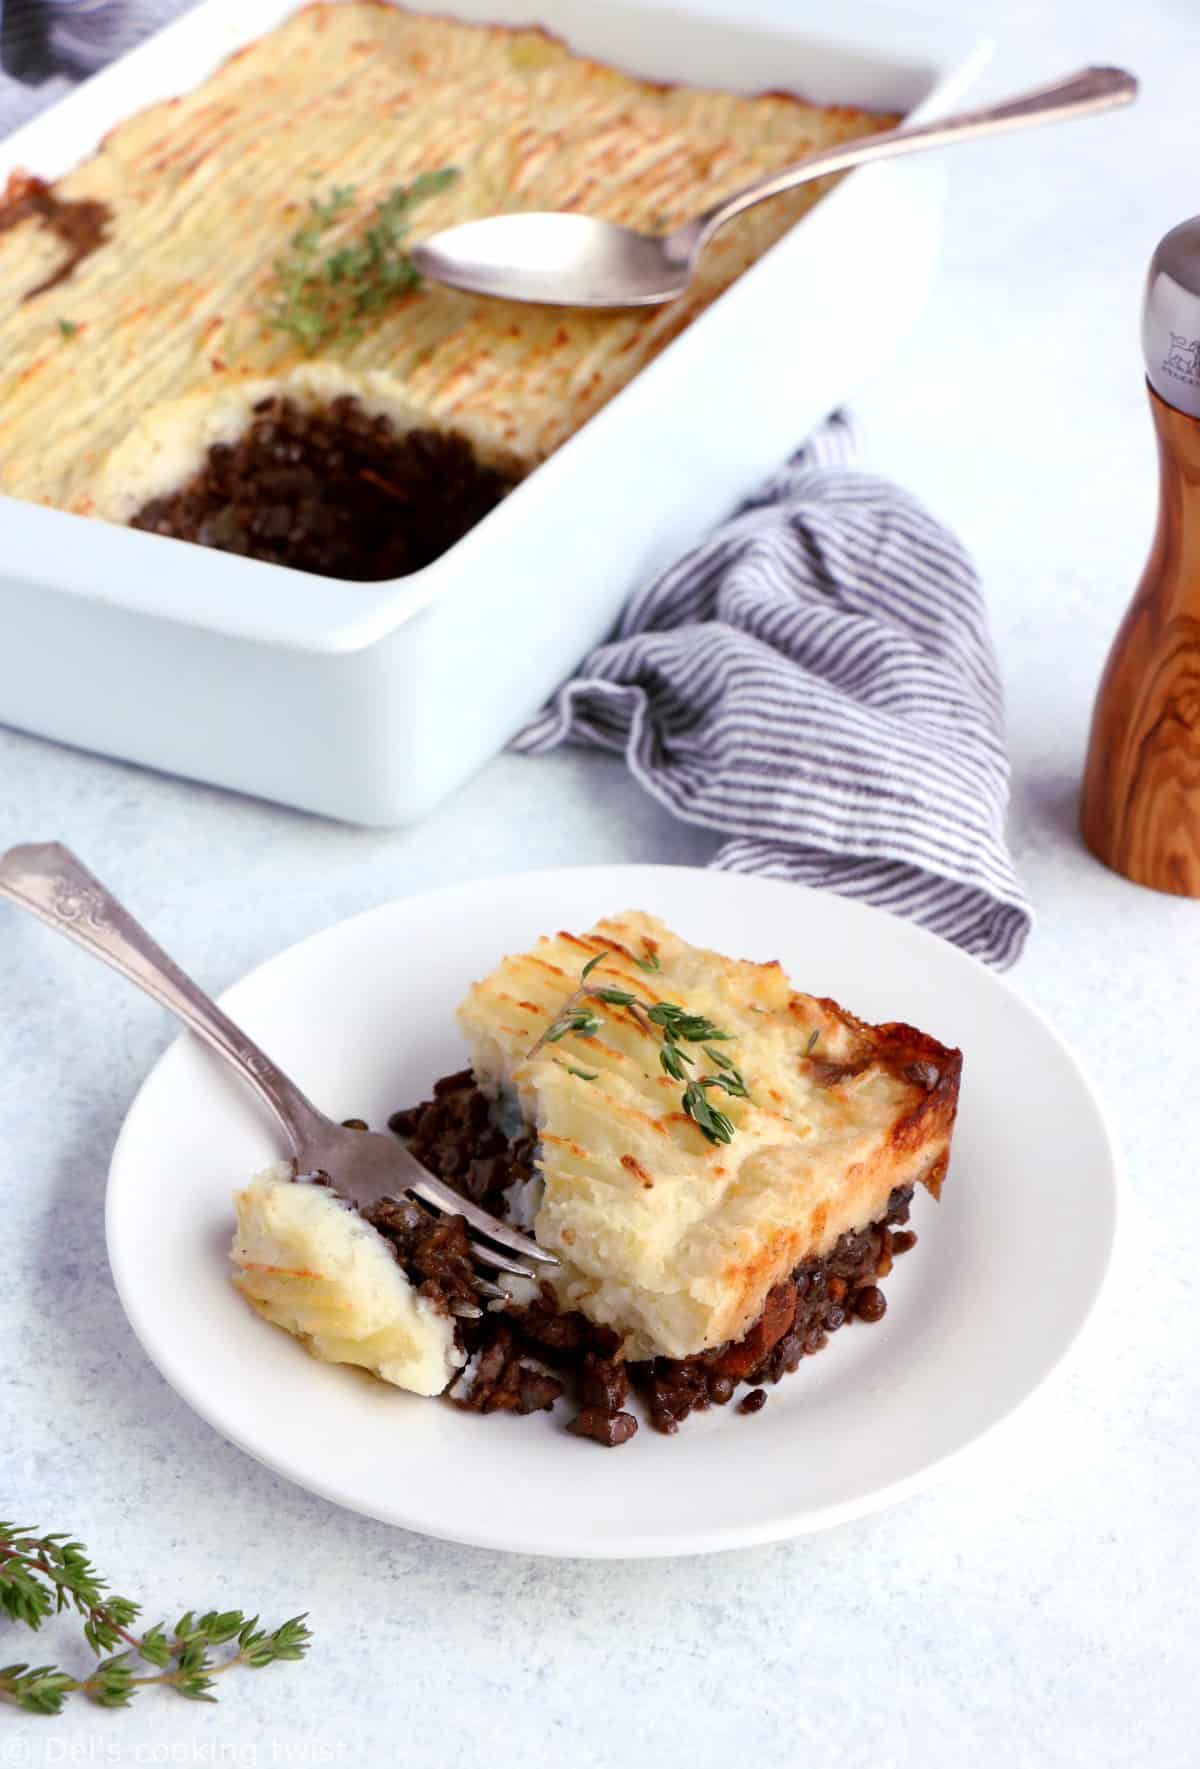 Vegetarian Lentil Shepherd's Pie makes for a rich, hearty and comforting family dinner recipe, easy to make and packed with flavors.